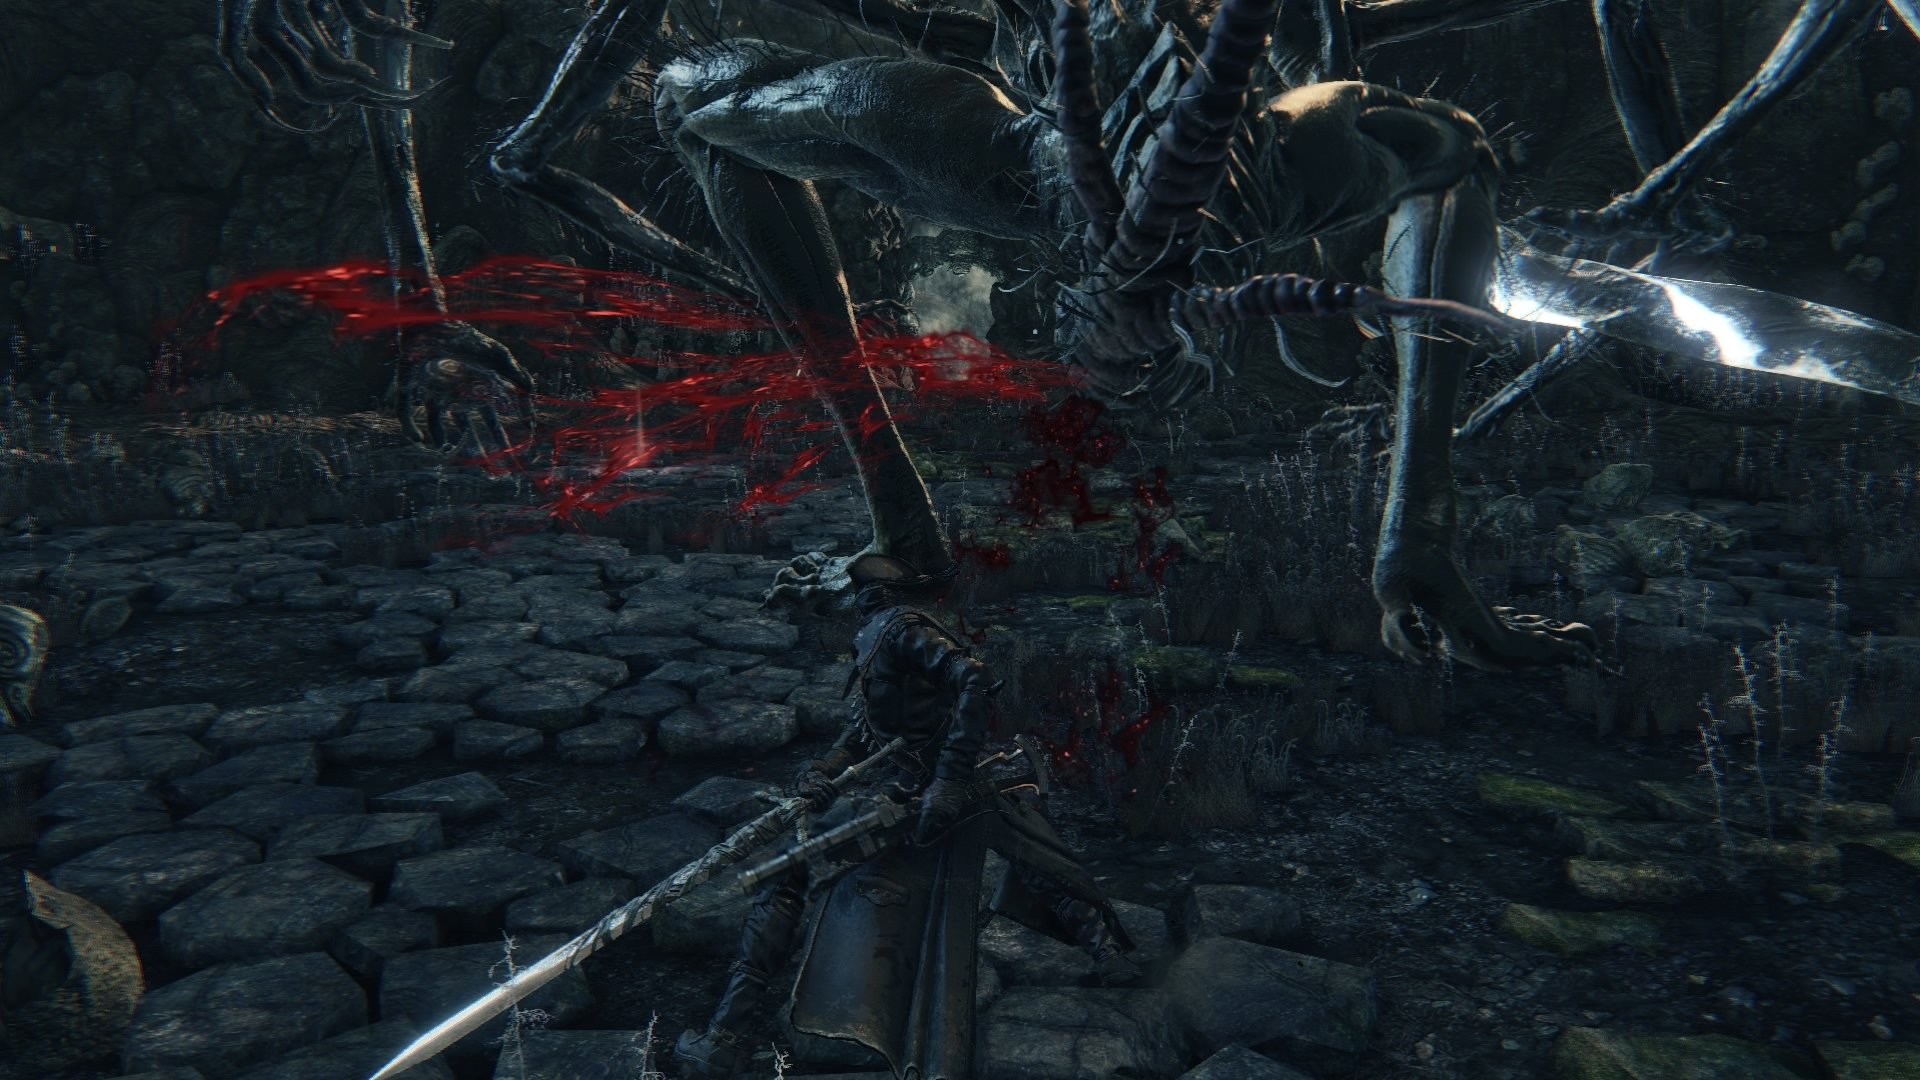 Blood Amygdala's Tail